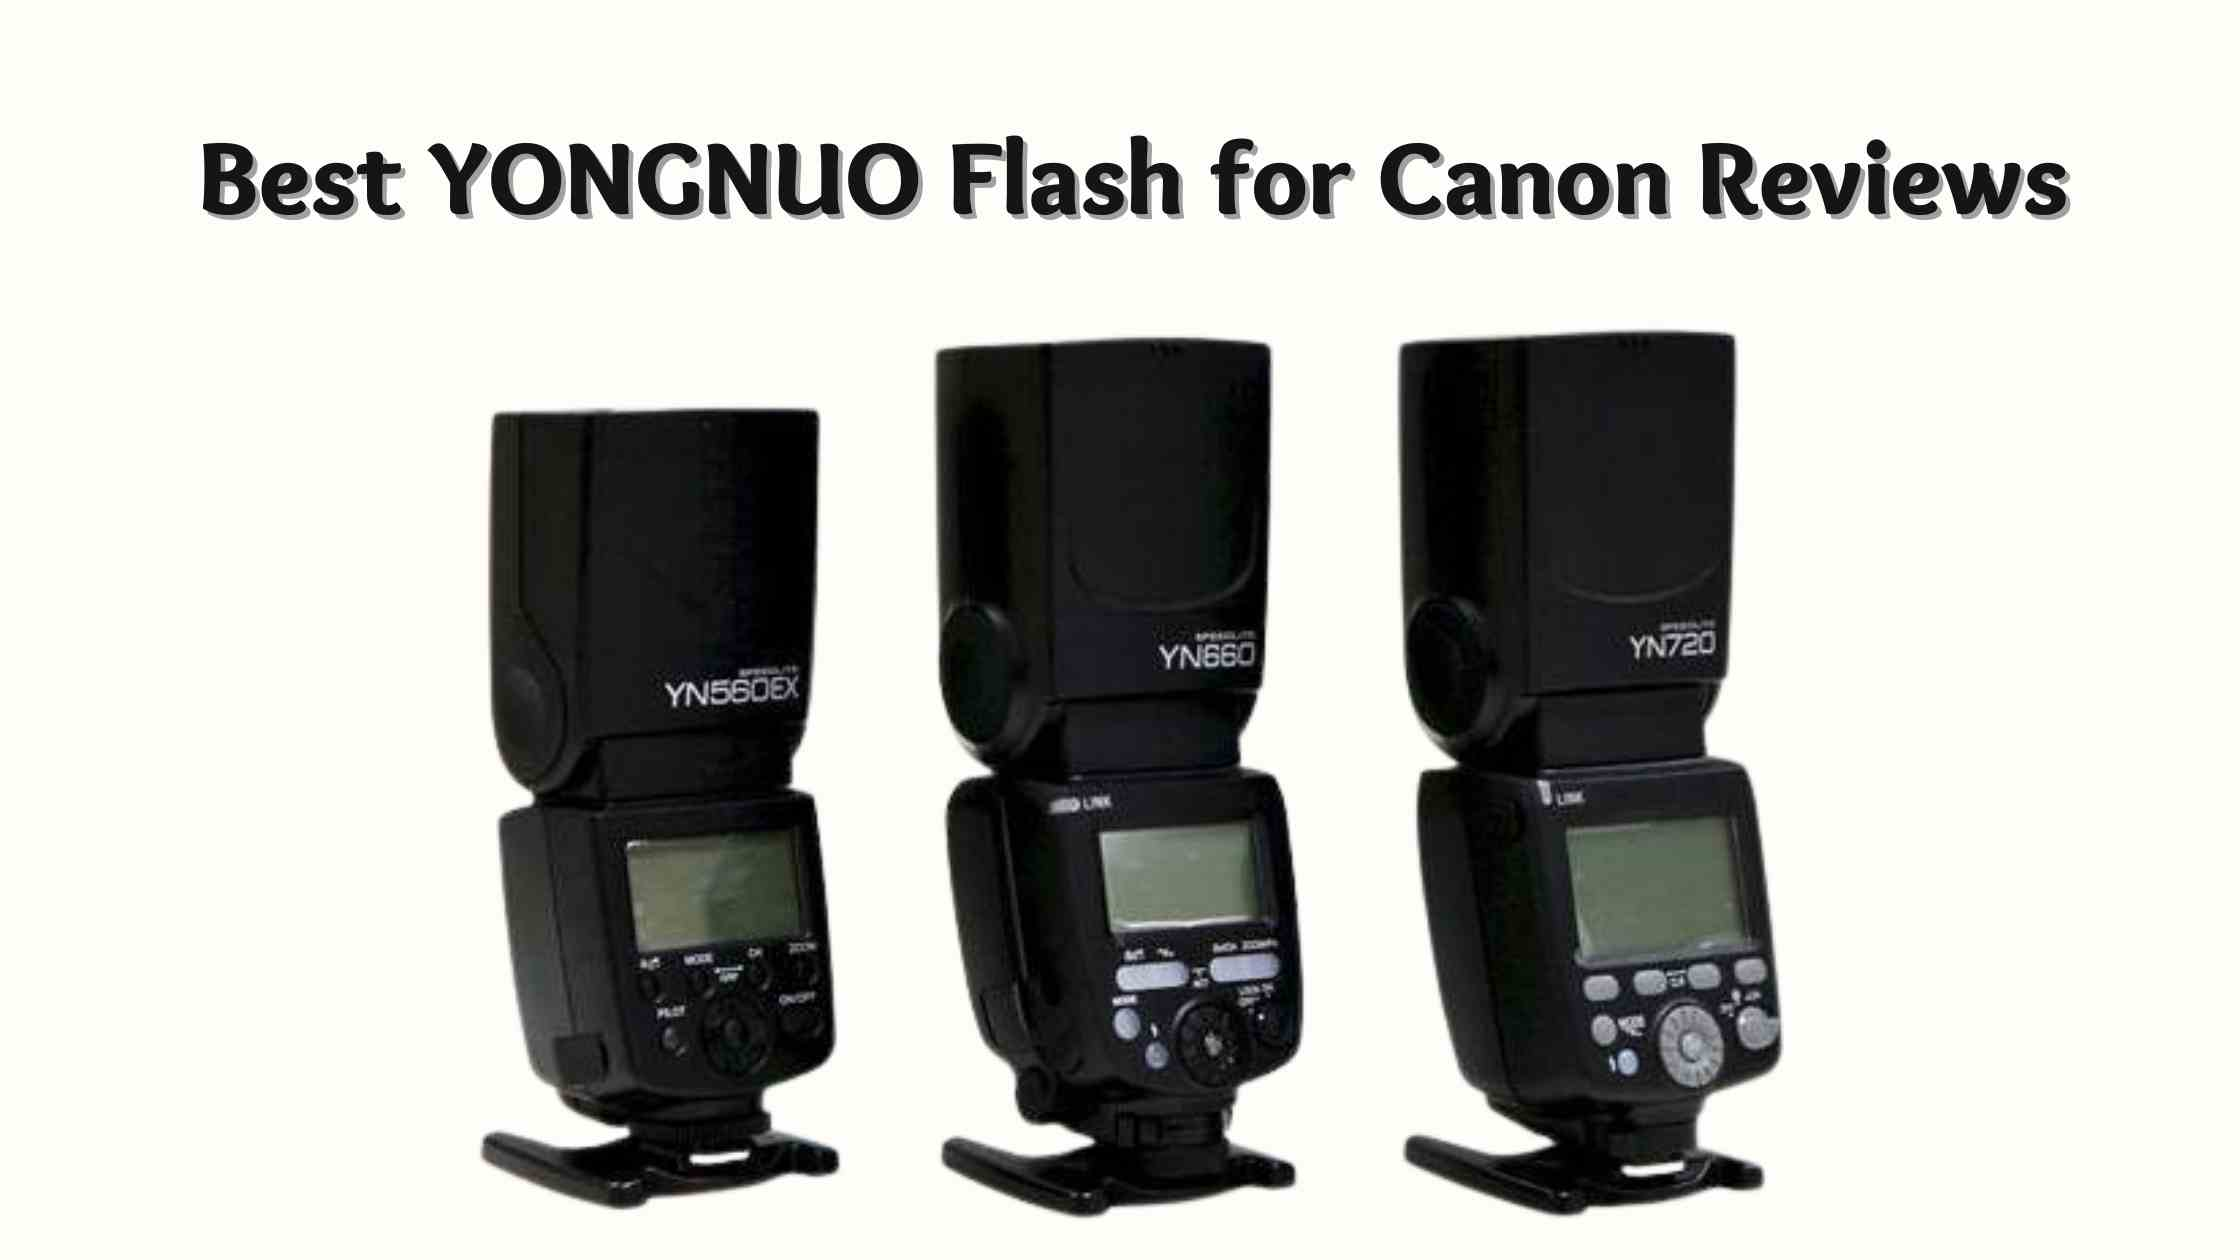 Best YONGNUO Flash for Canon Reviews